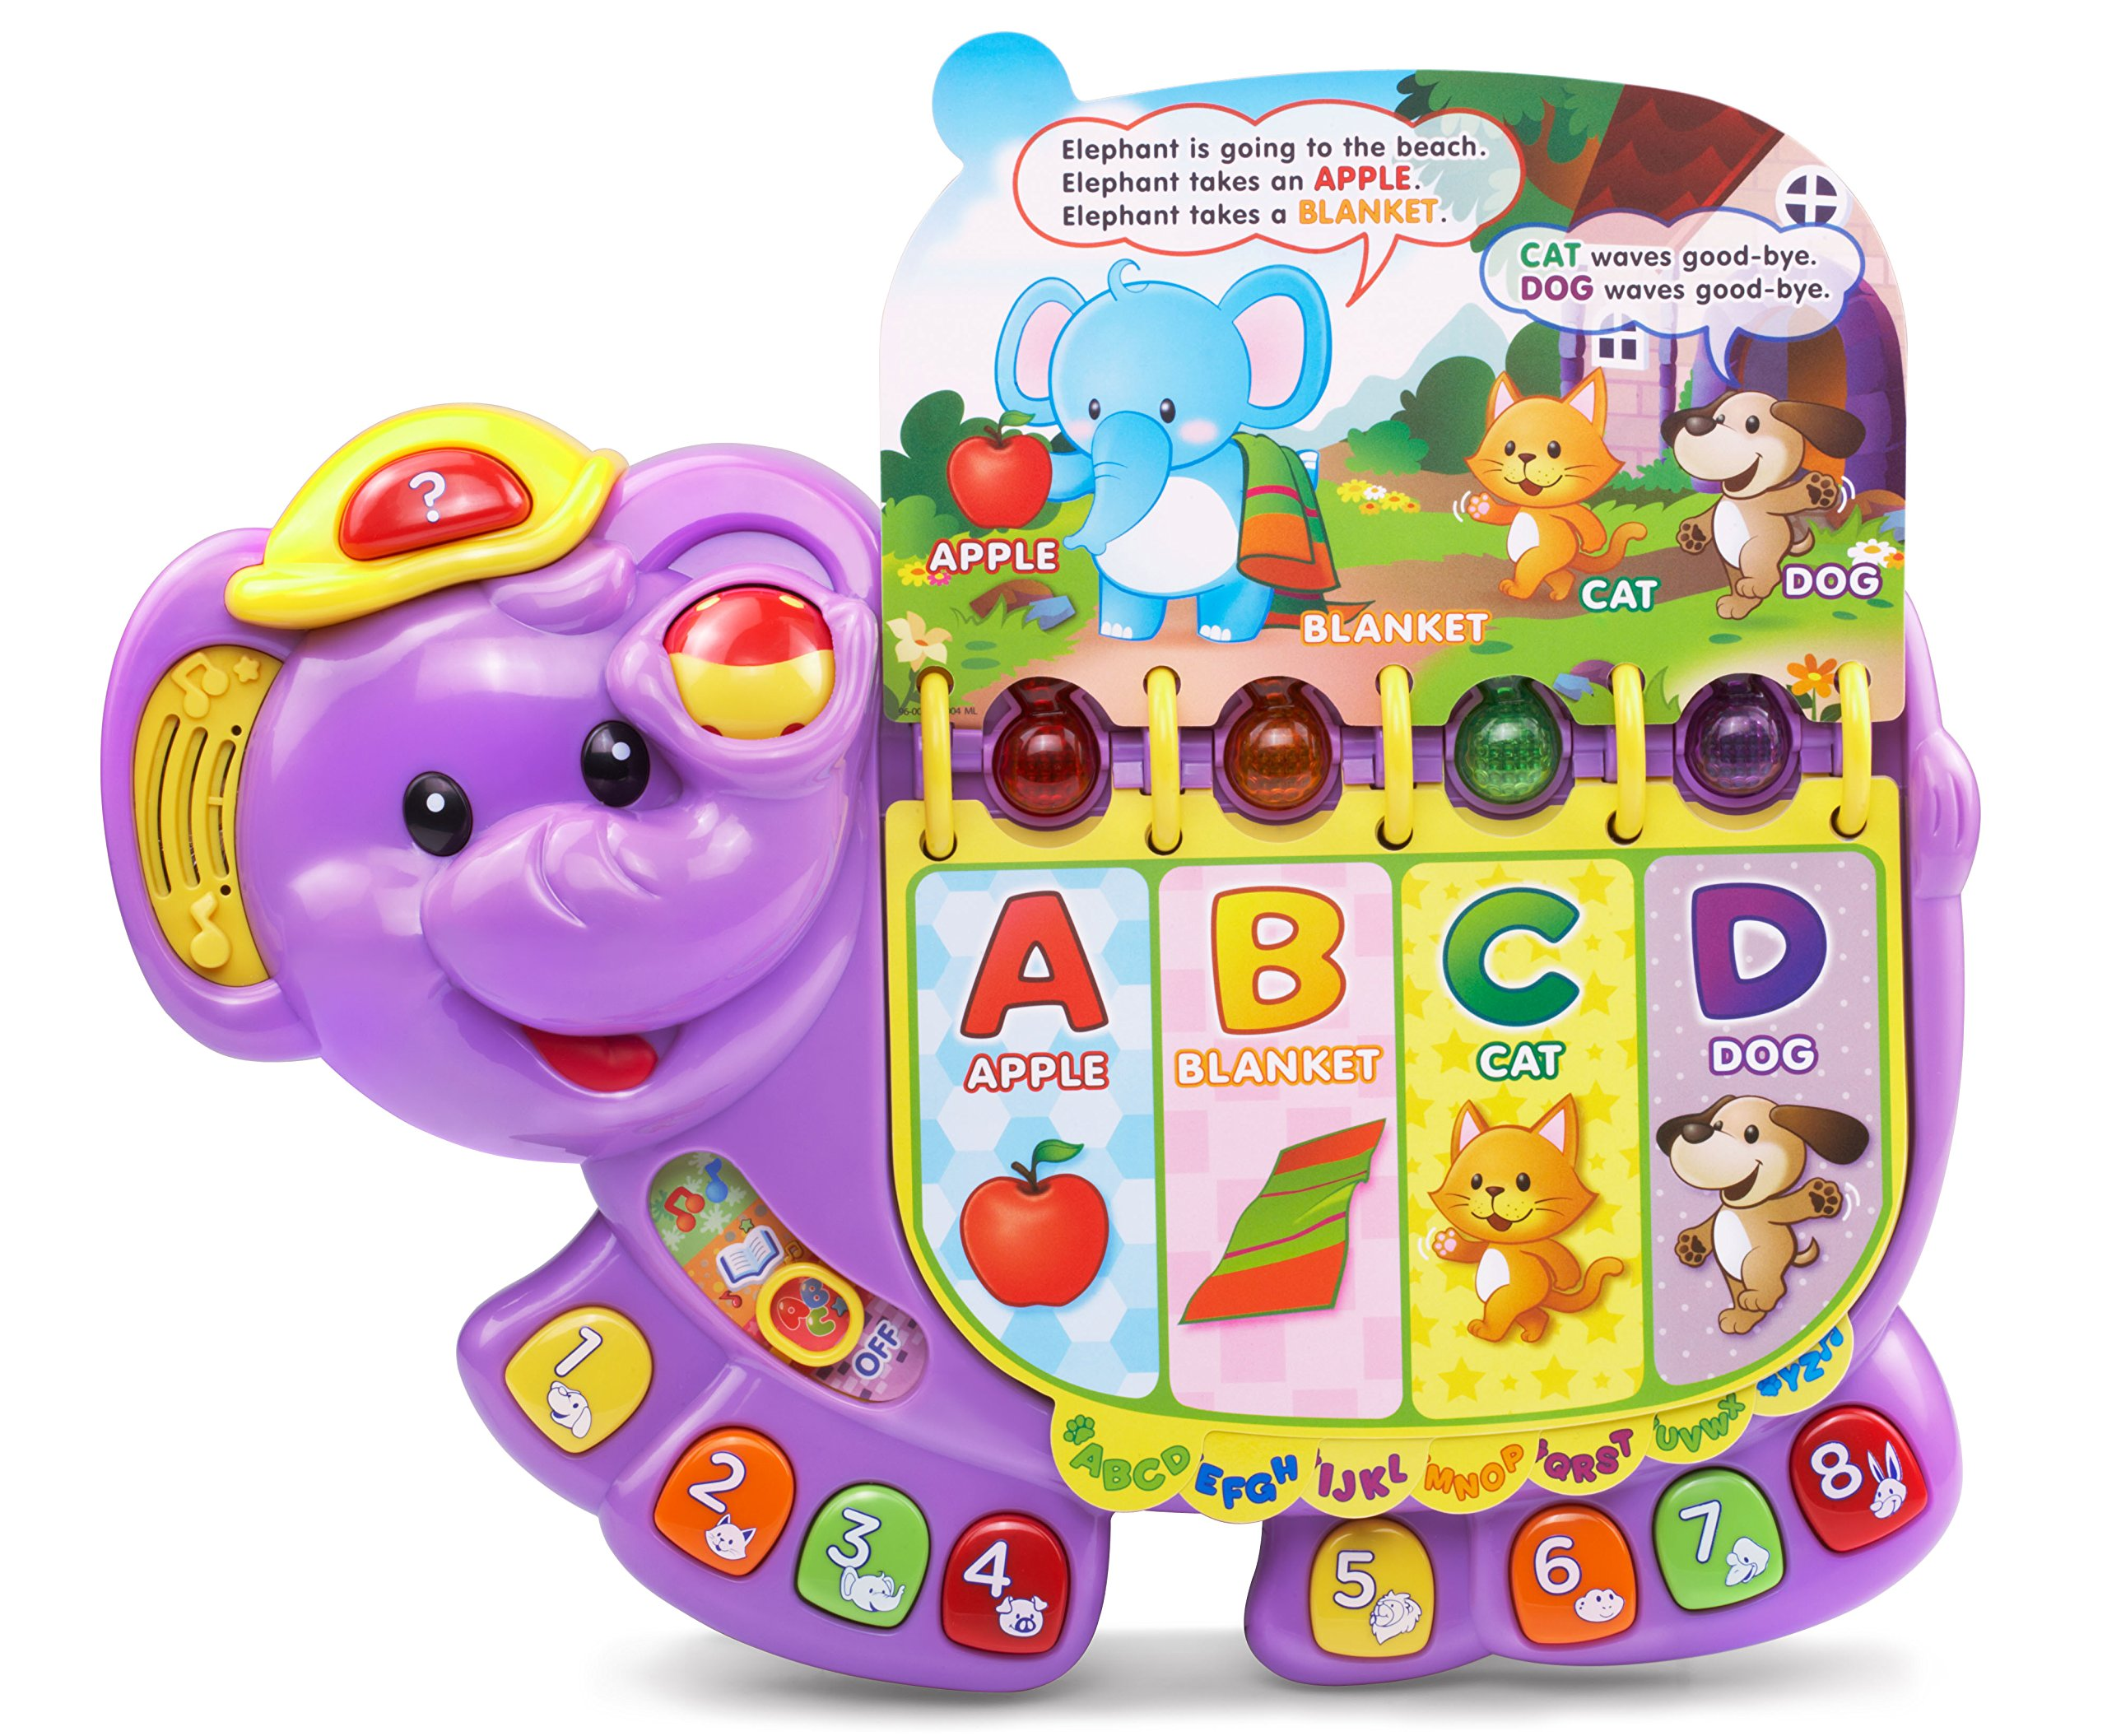 VTech Touch and Teach Elephant, Purple (Amazon Exclusive) by VTech (Image #2)